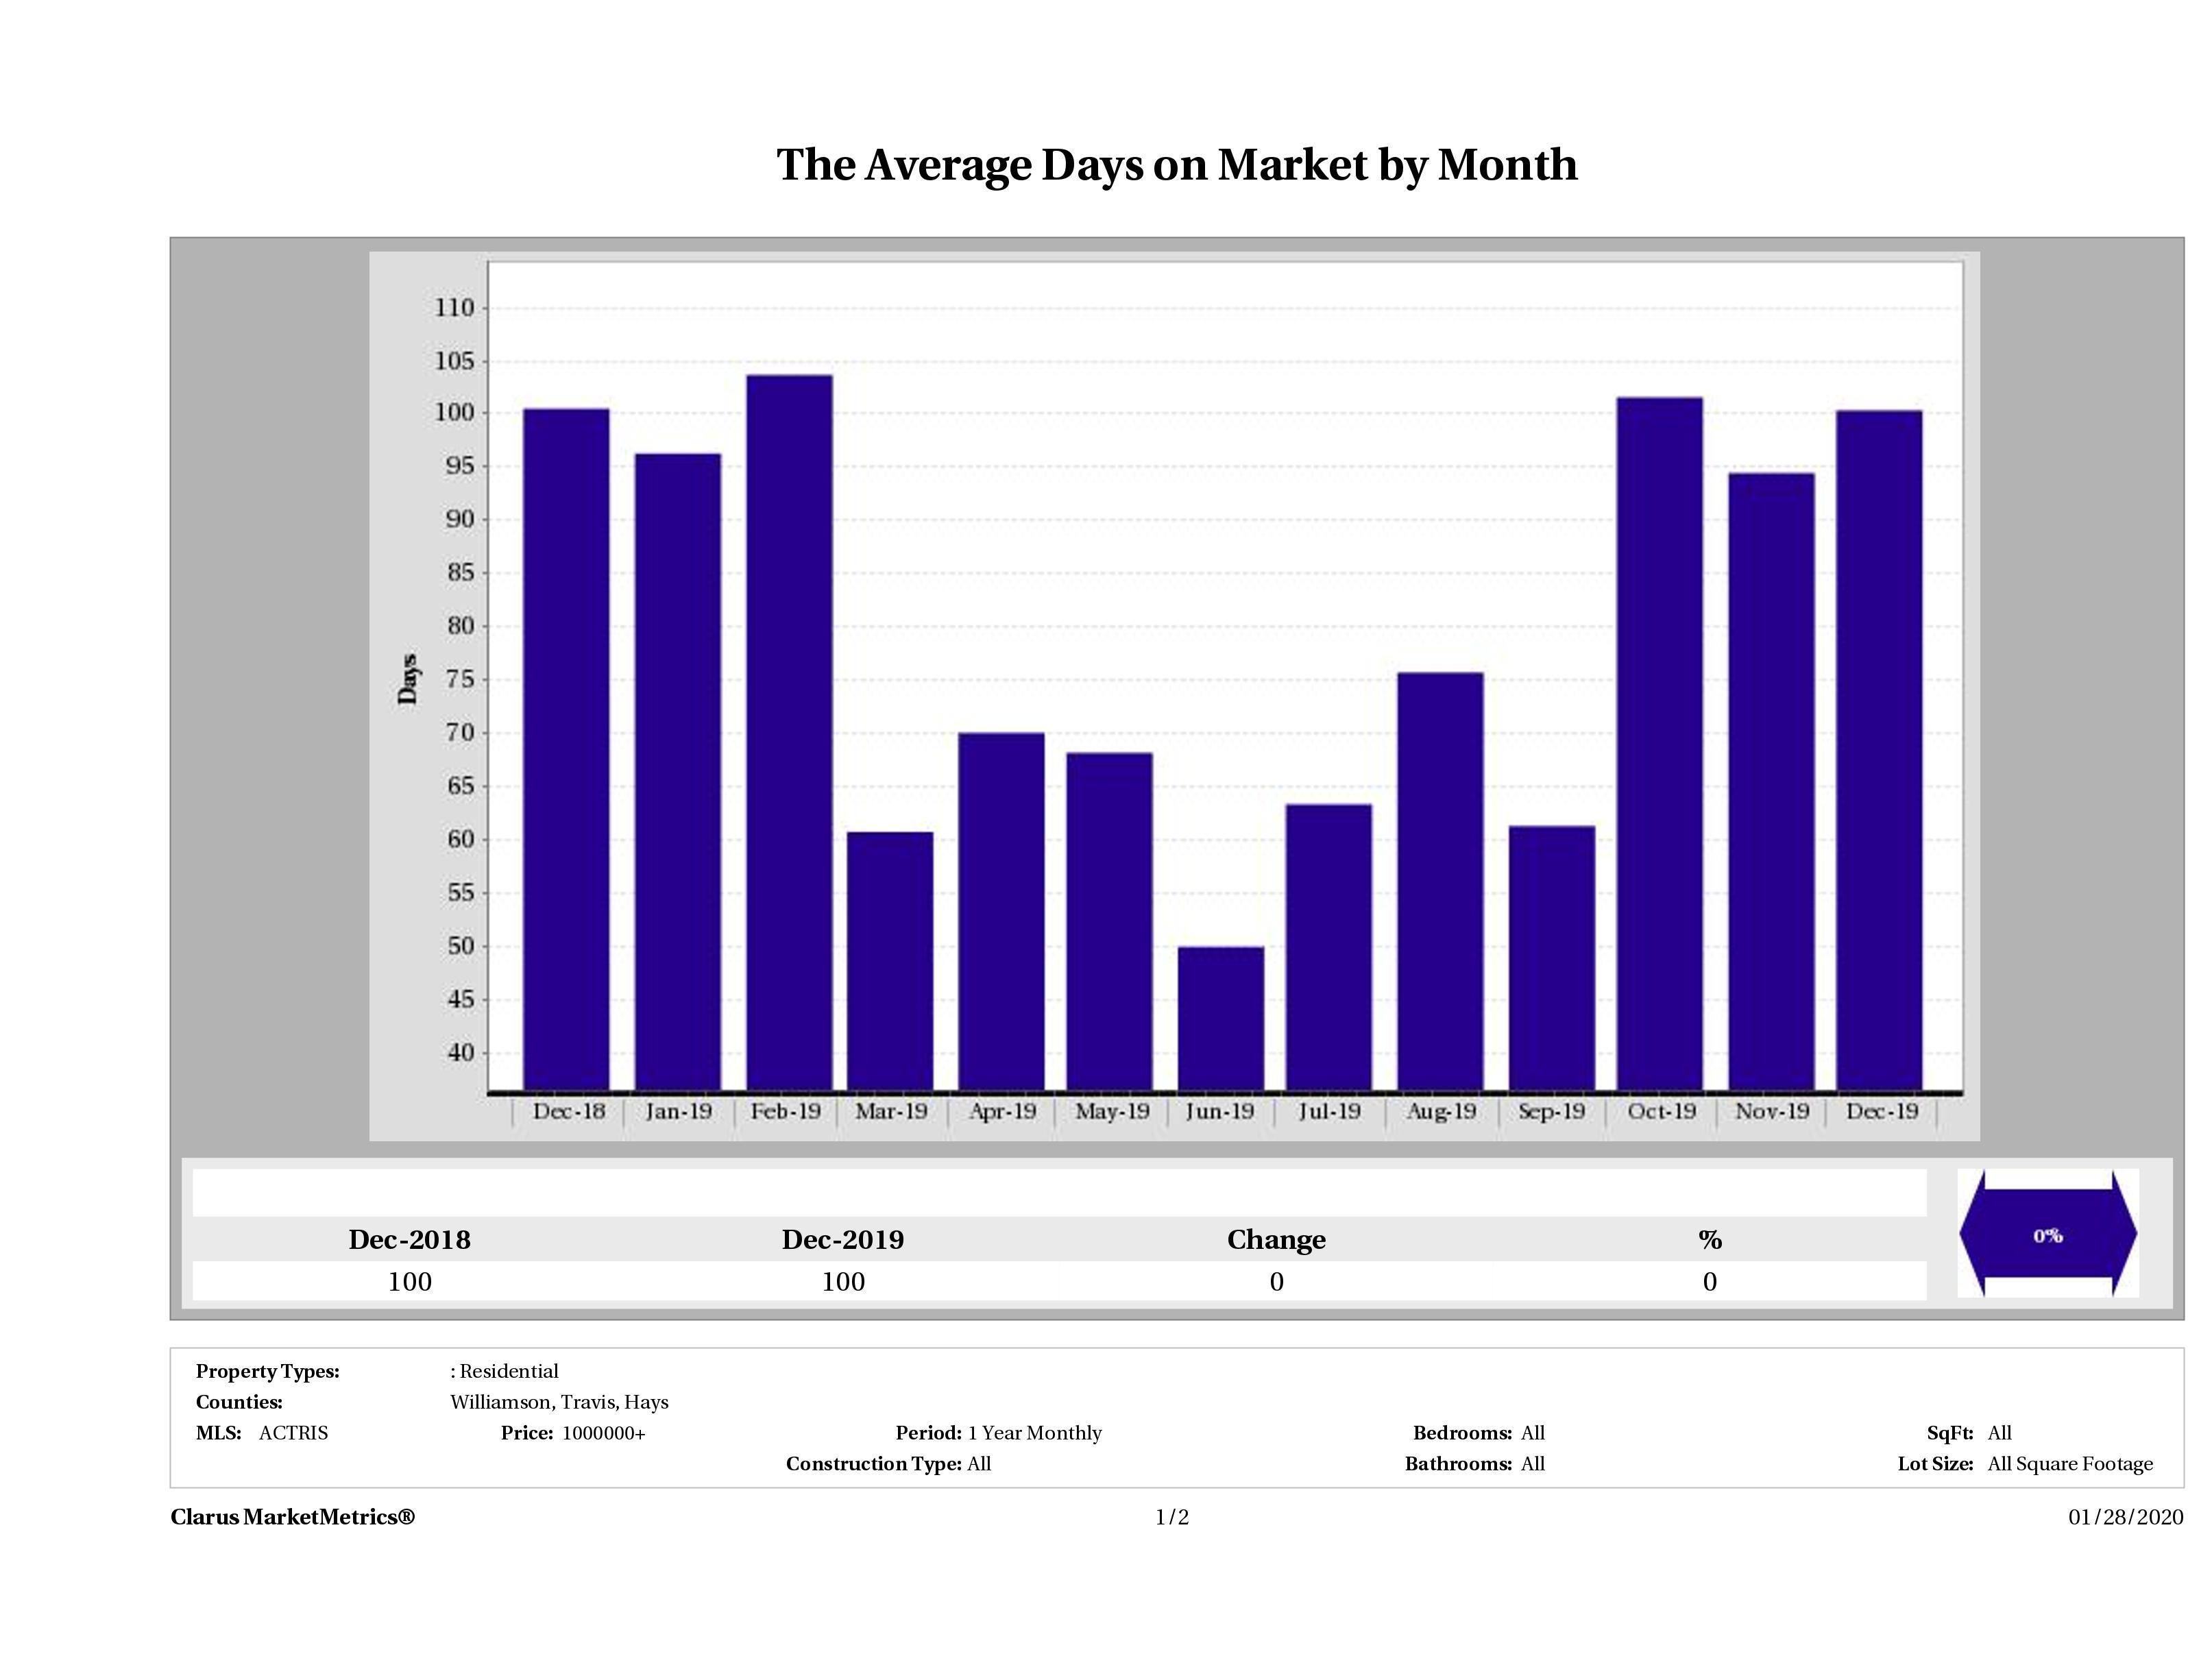 Austin luxury homes average days on market December 2019